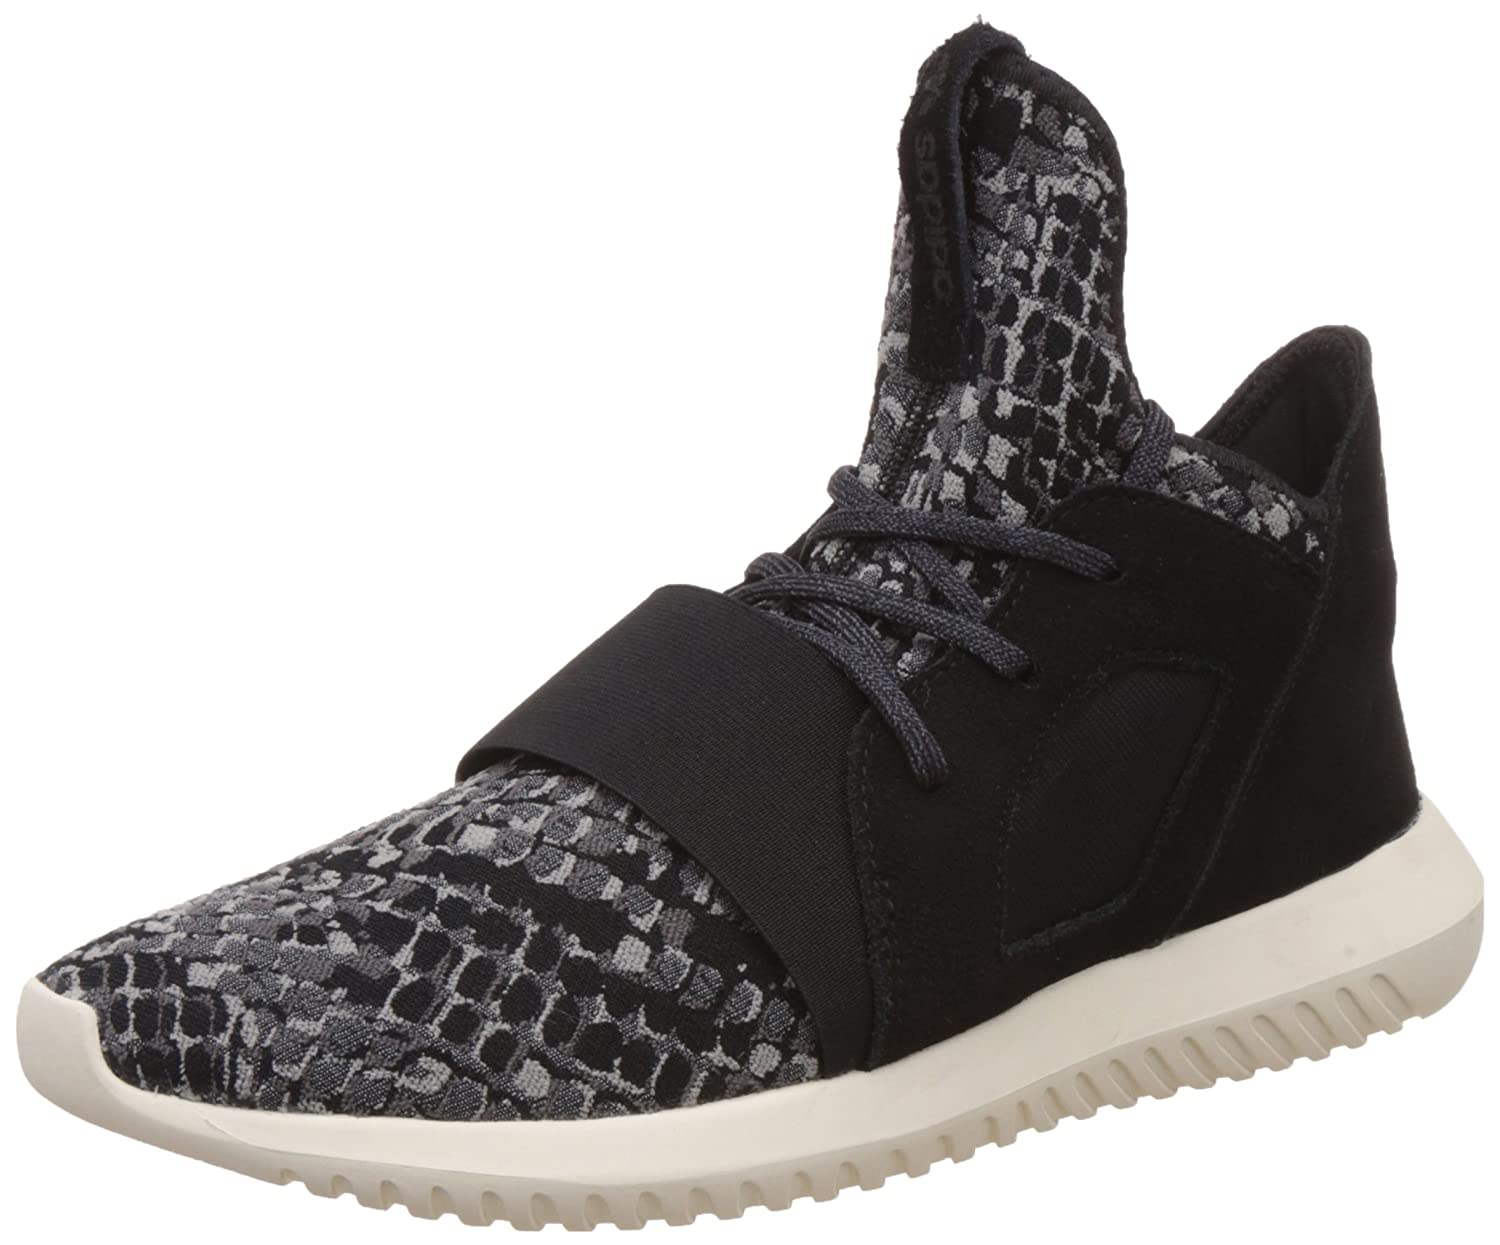 adidas Originals Women s Tubular Defiant W Leather Sneakers  Buy Online at  Low Prices in India - Amazon.in 54cf16690f